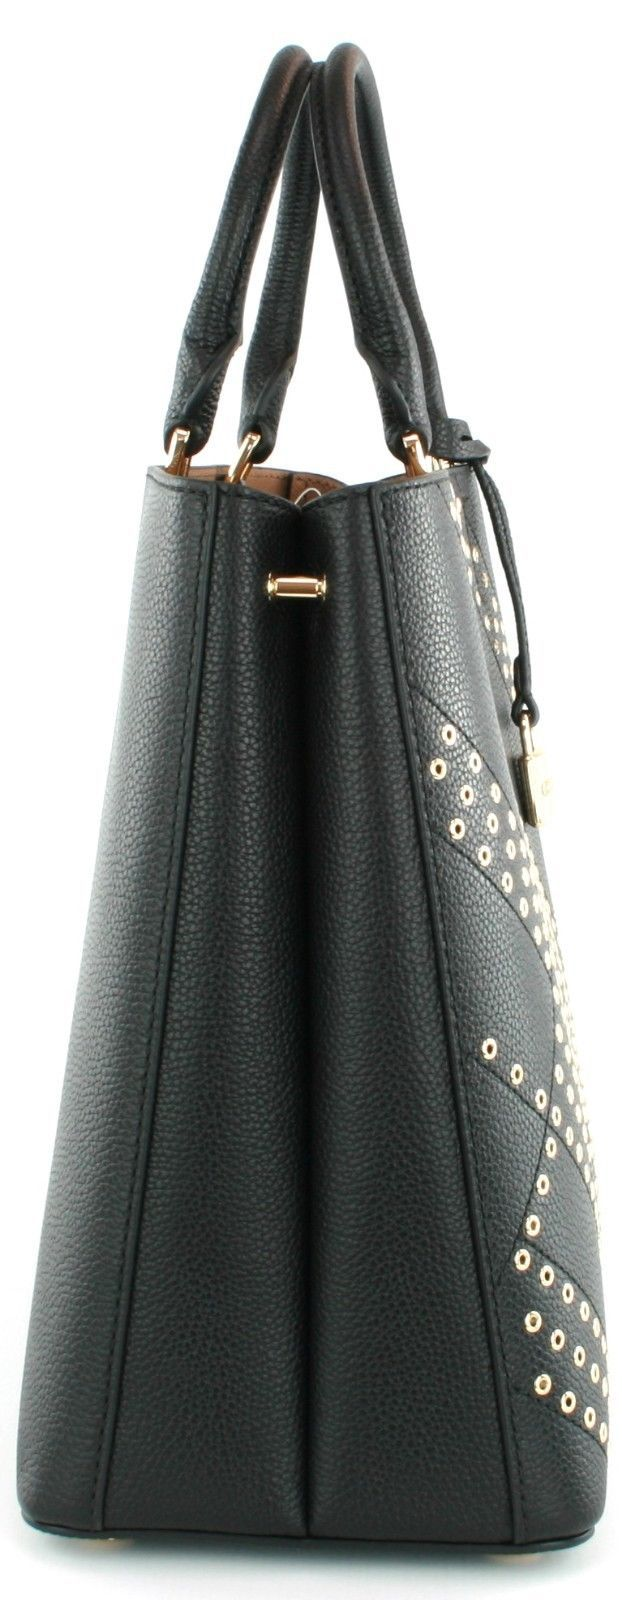 Michael Kors Adele Black Leather Shoulder Bag Handbag RRP £345